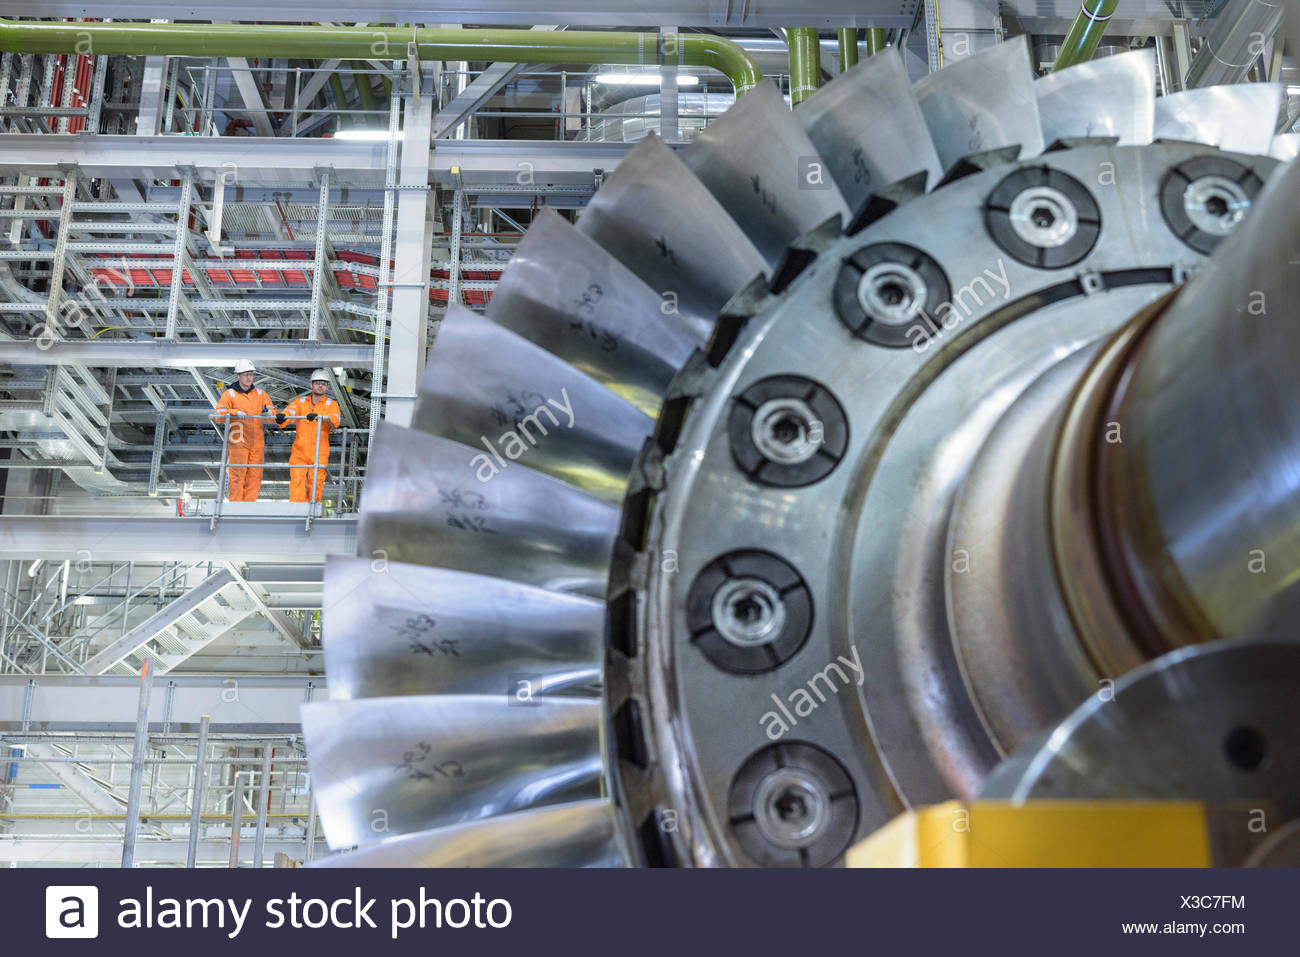 Workers on high level gantry in gas-fired power station - Stock Image